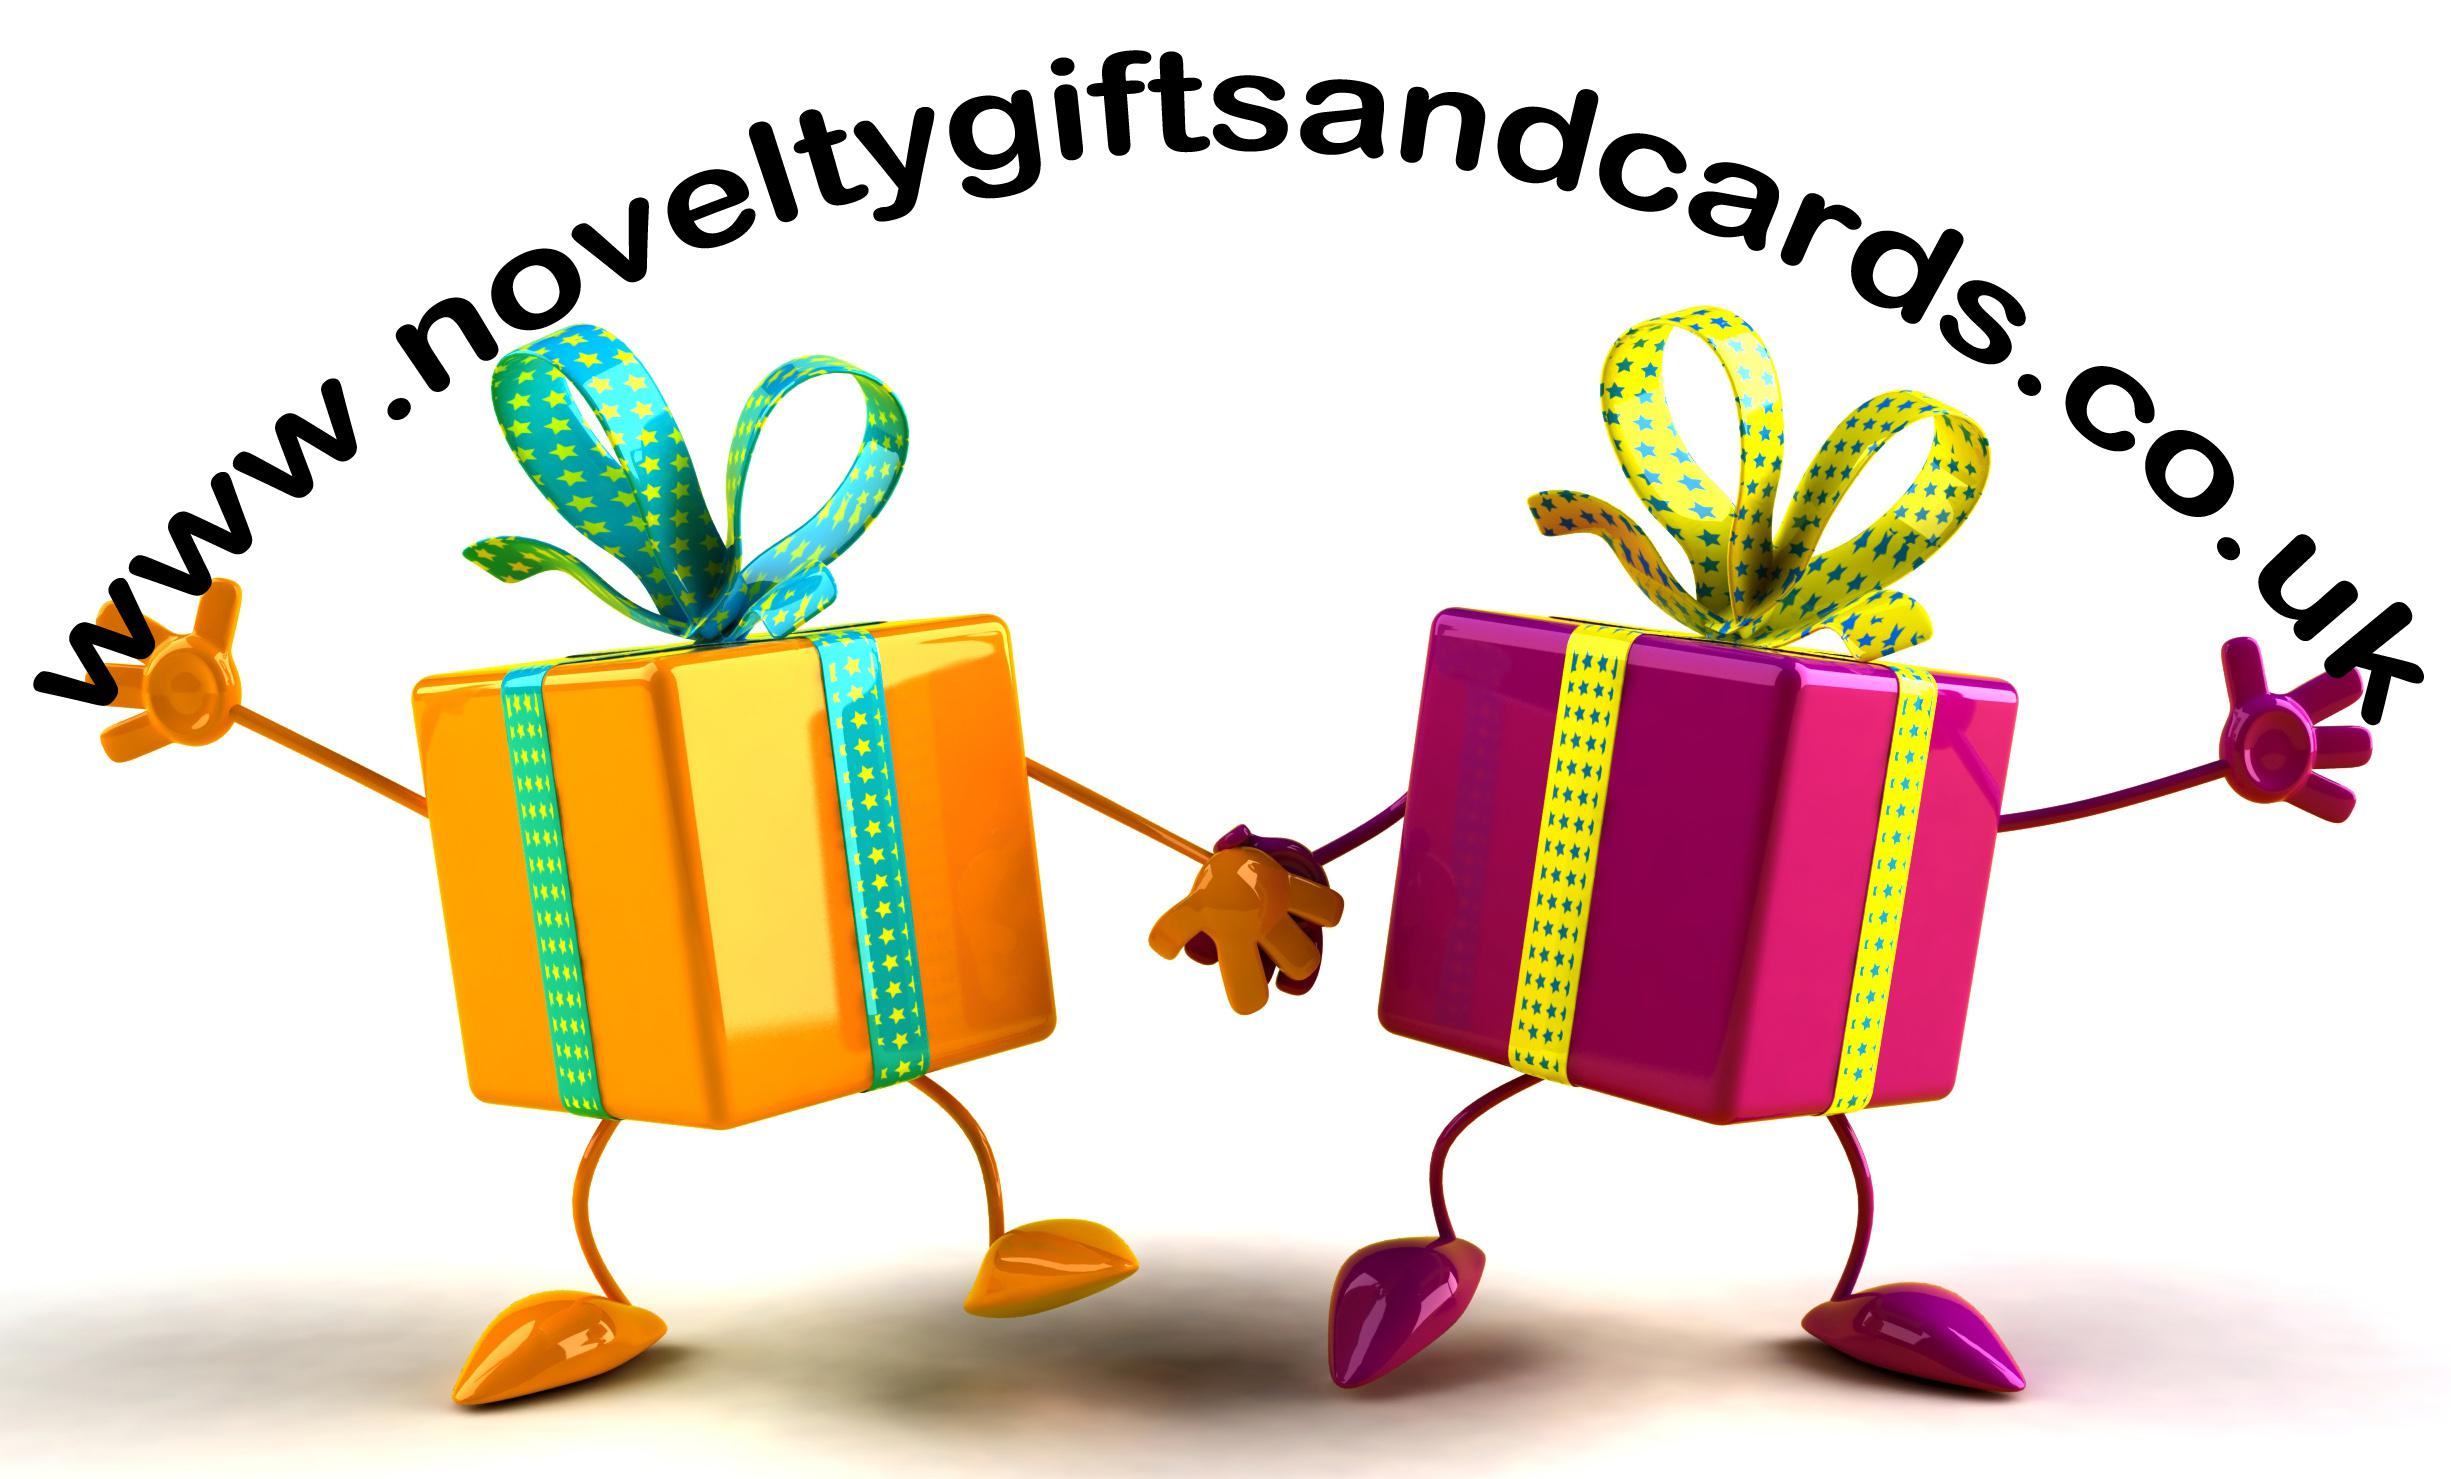 Novelty Gifts and Cards Logo